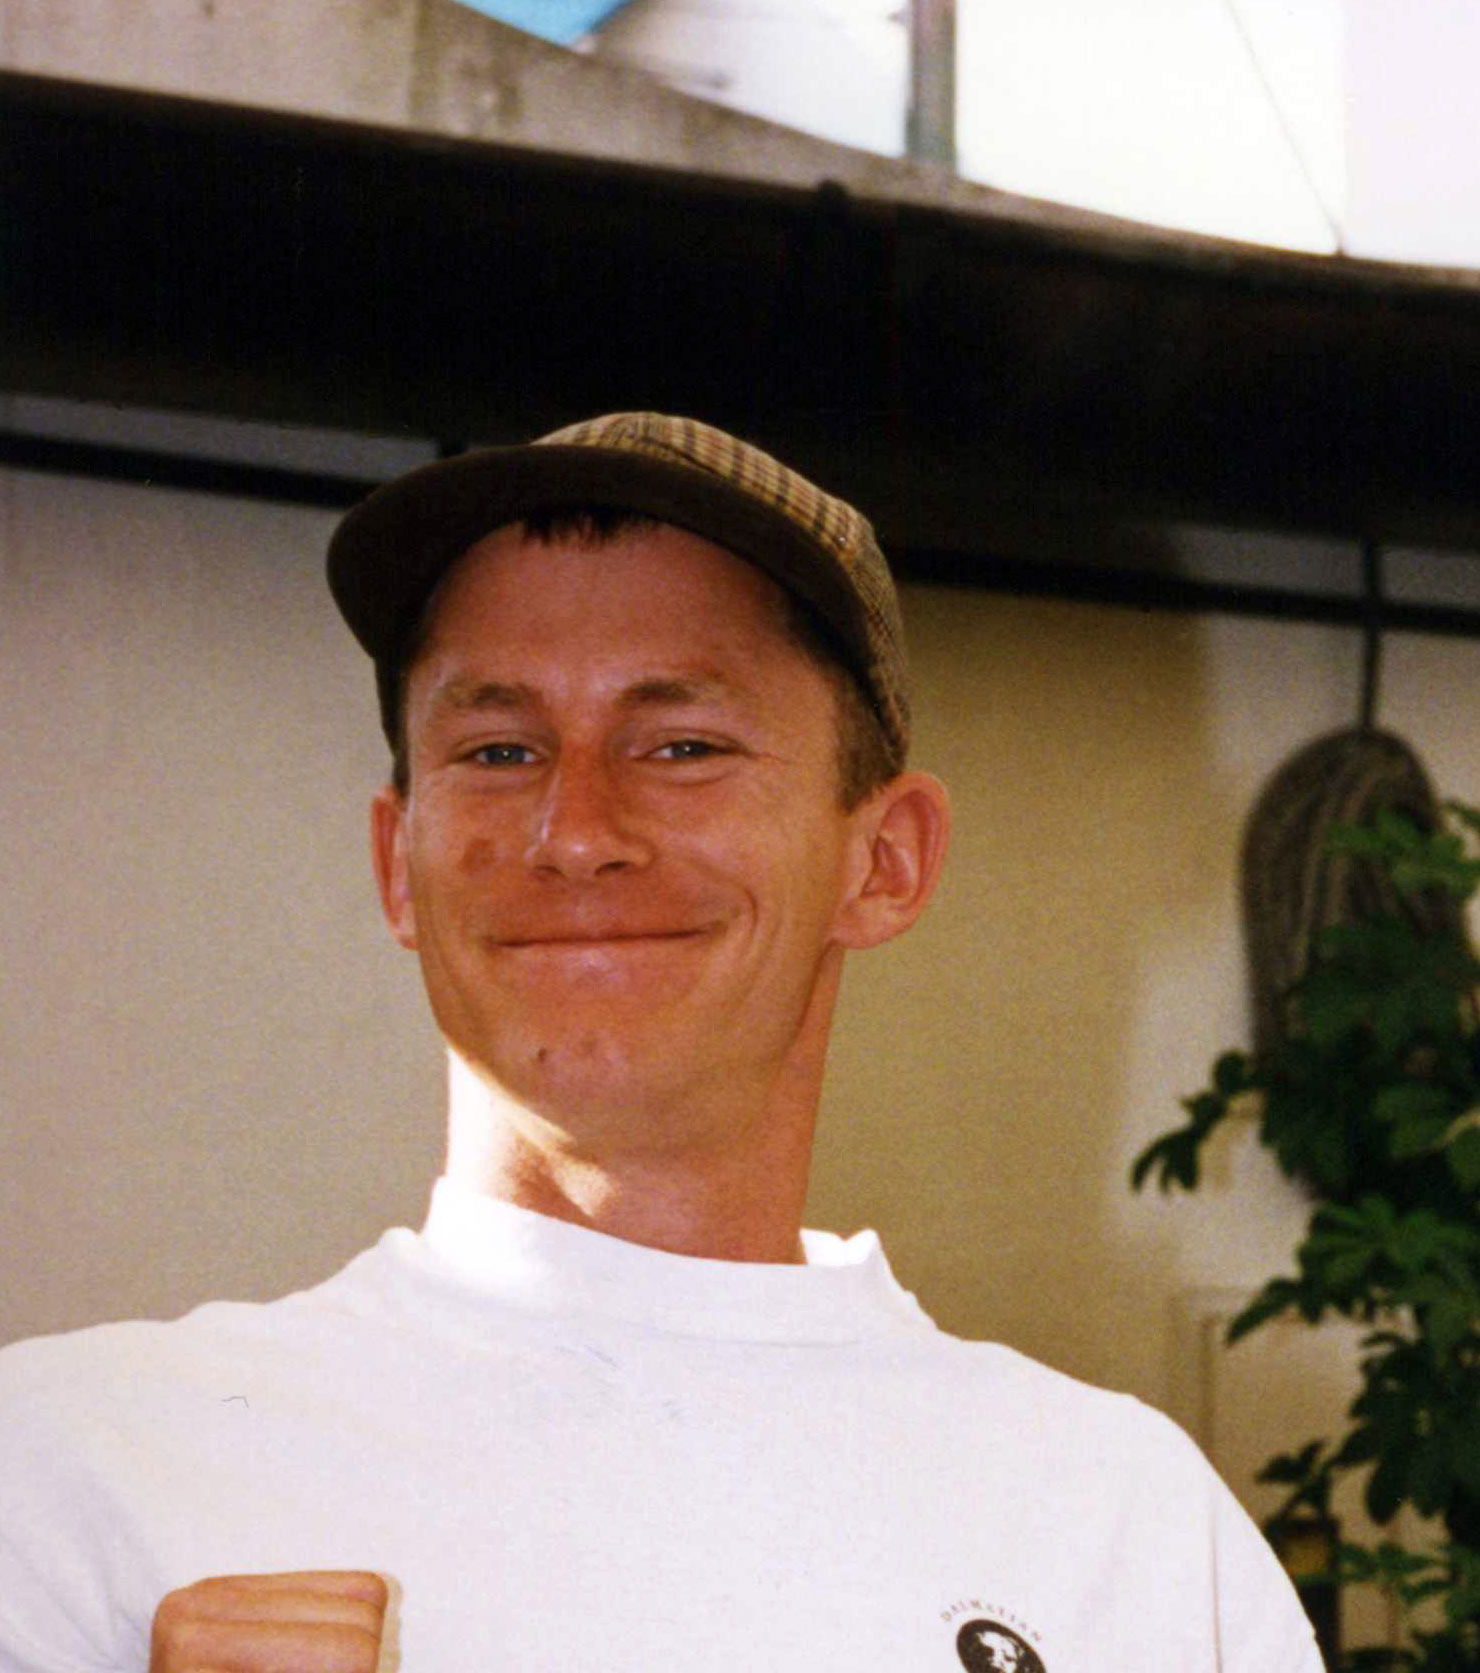 Andy Devore   The first coordinator of the Flower Empower program. A garden grows with love and Andy's undeniable love fertilized the soil of the program.